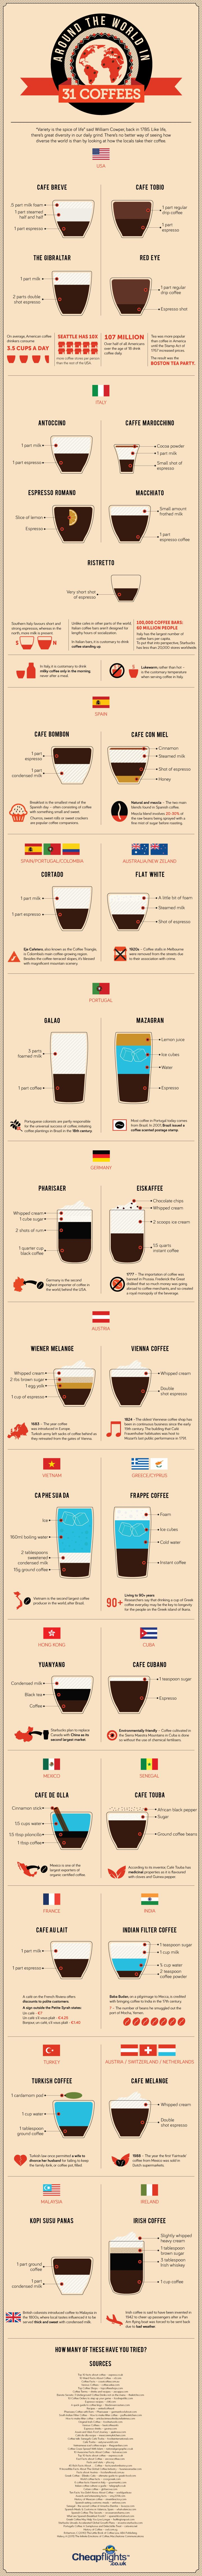 """We love coffee, you love #coffee, we all love coffee! Check out this great article via Huffington Post: """"Around The World In 31 Coffees (#INFOGRAPHIC)"""" http://huff.to/1i0Z1Jr"""